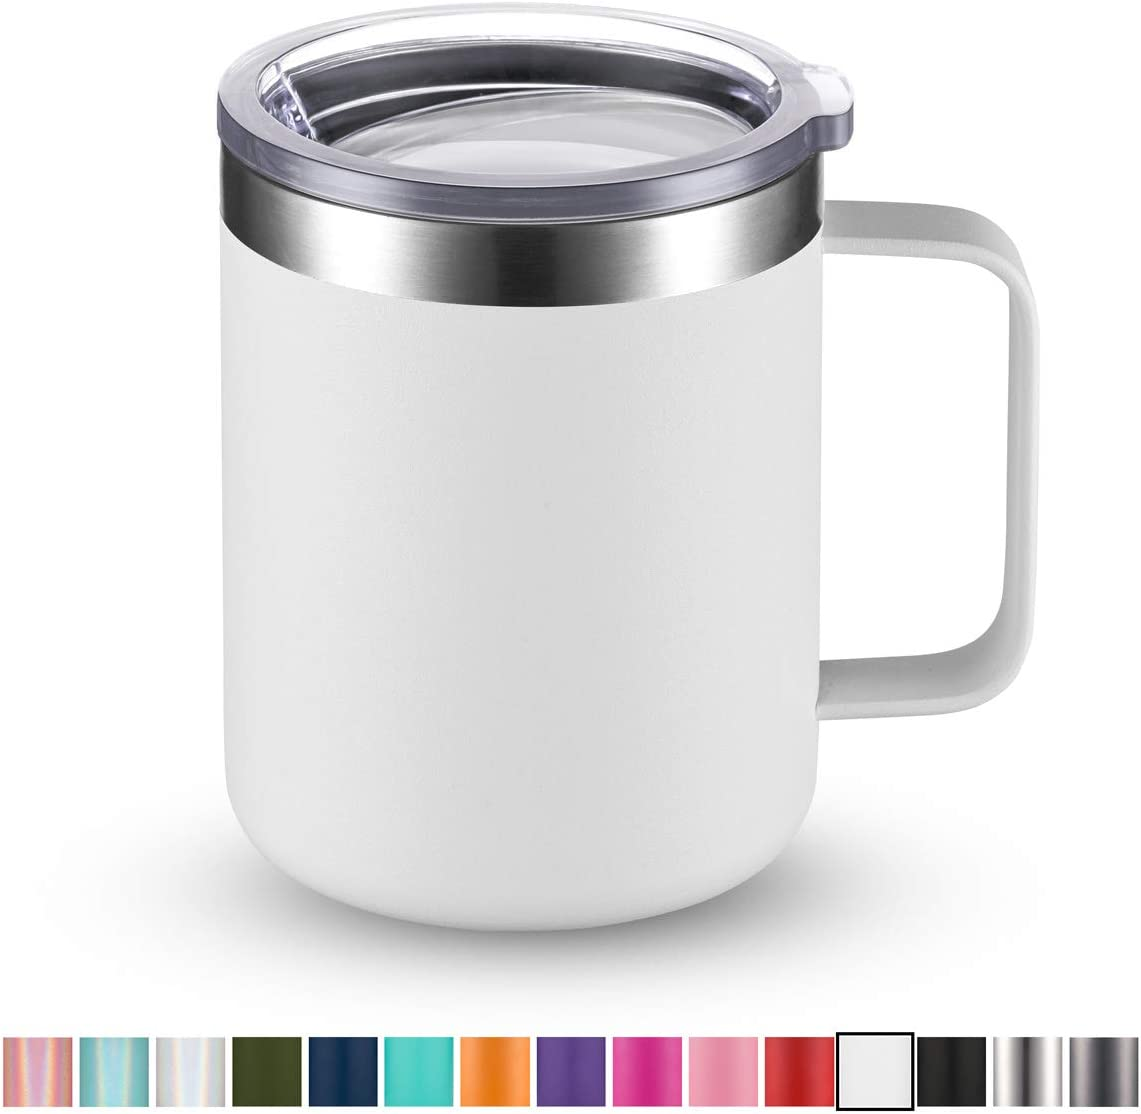 Civago Stainless Steel Coffee Mug Cup with Handle, 12 oz Double Wall Vacuum Insulated Tumbler with Lid Travel Friendly (White, 1 Pack)